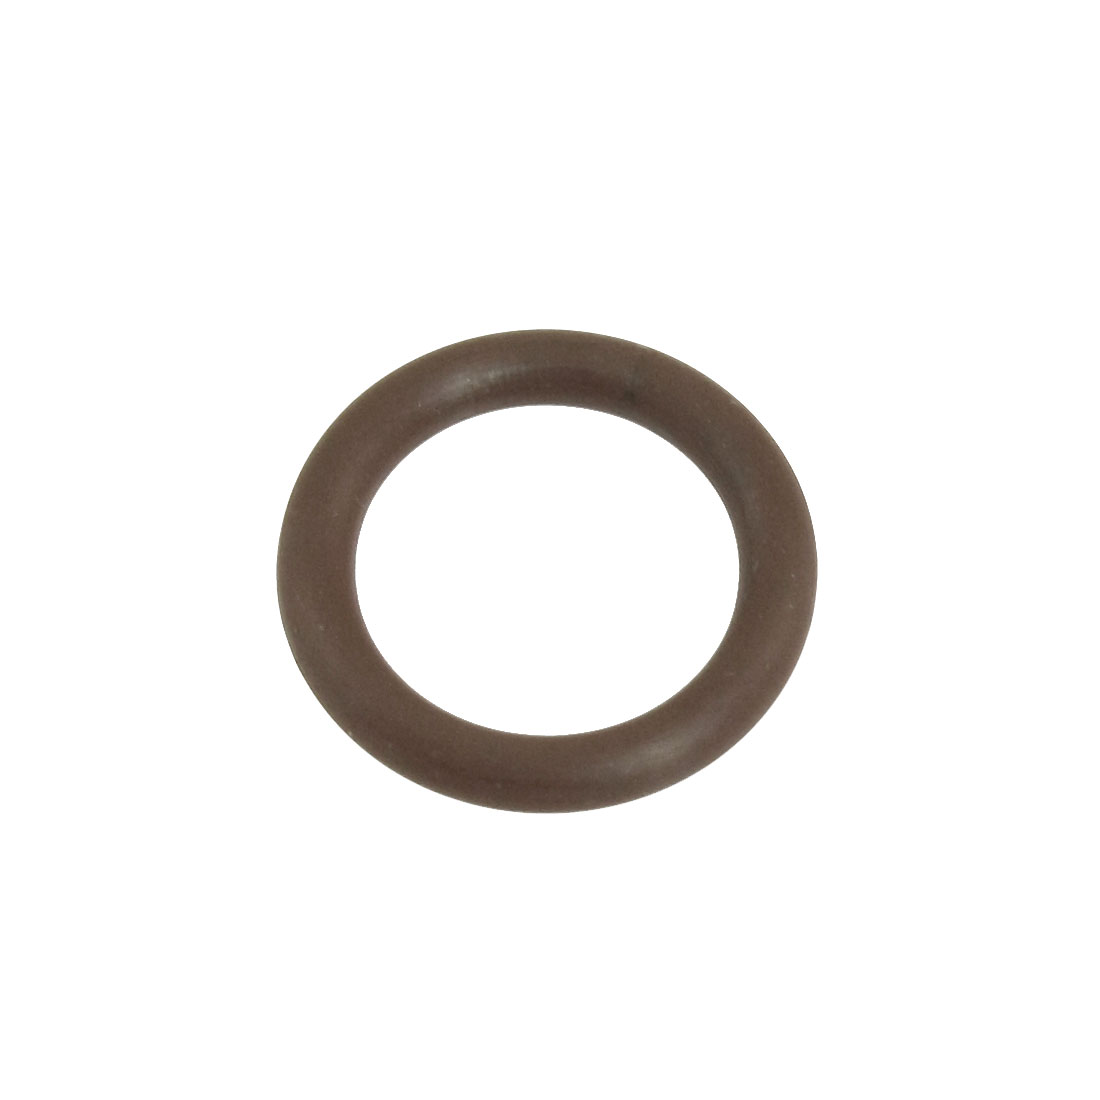 24mm-x-3-5mm-Fluorine-Rubber-O-Ring-Oil-Seals-Coffee-Color